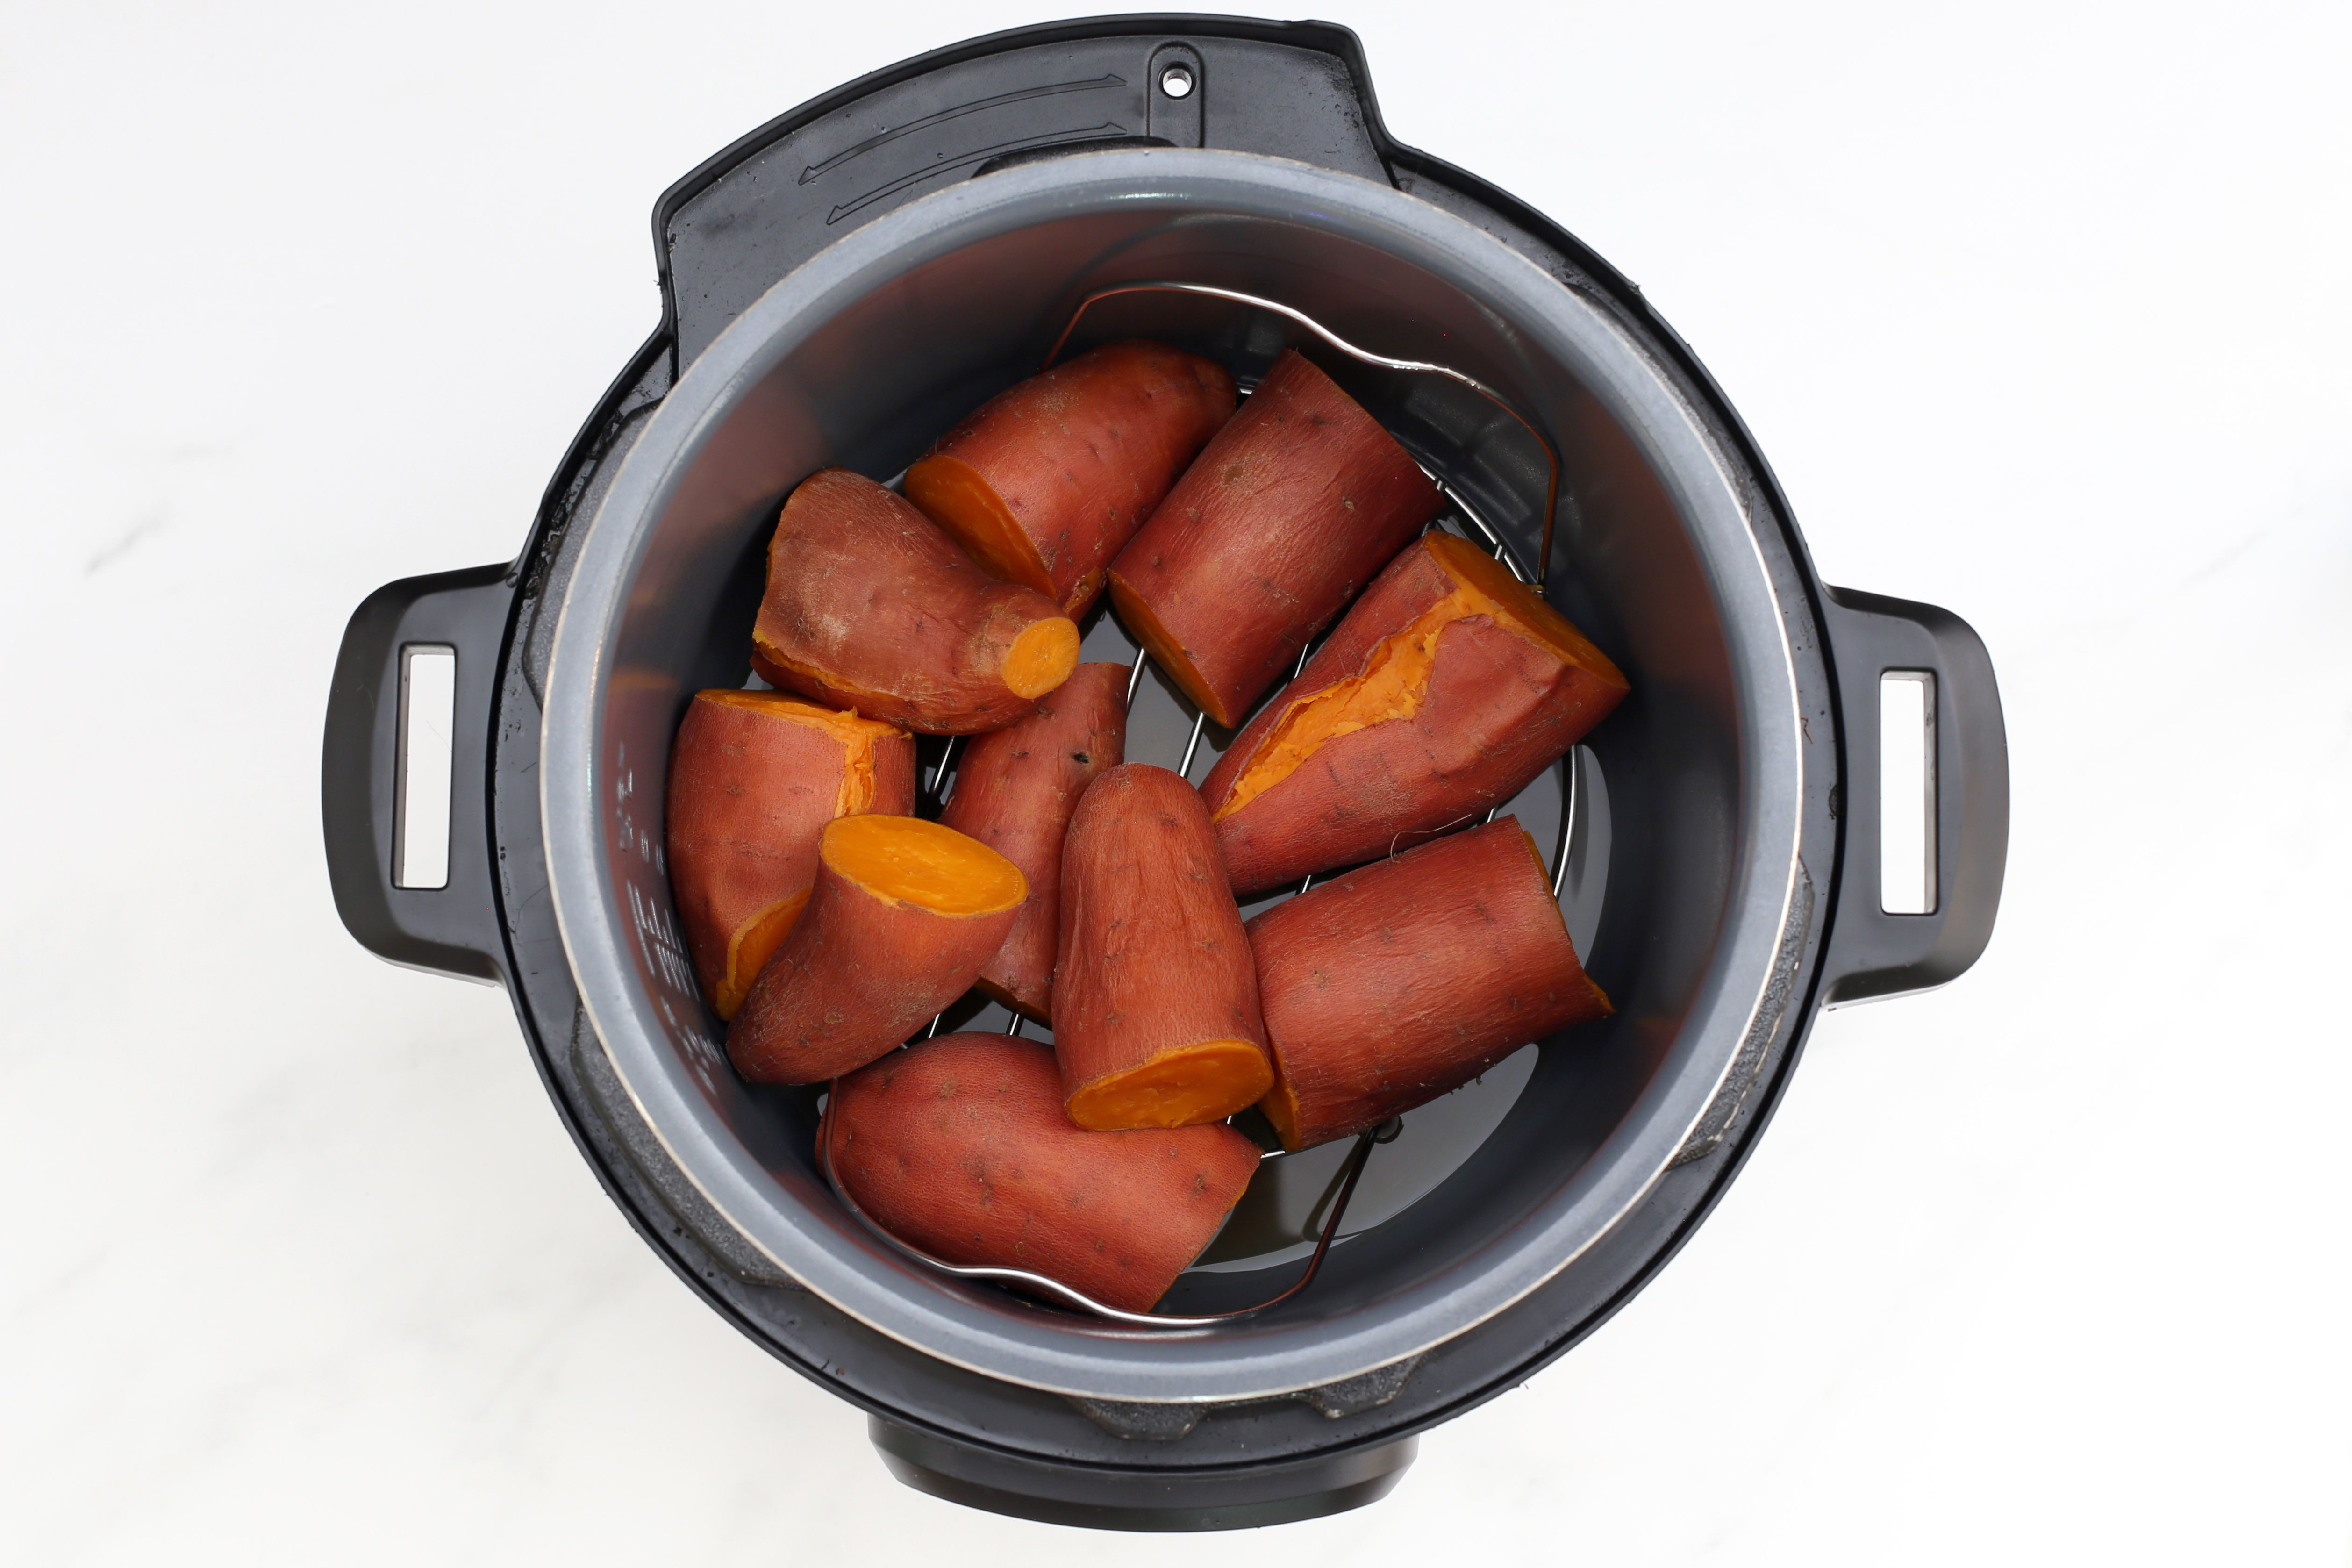 Place the sweet potatoes in the Instant Pot.